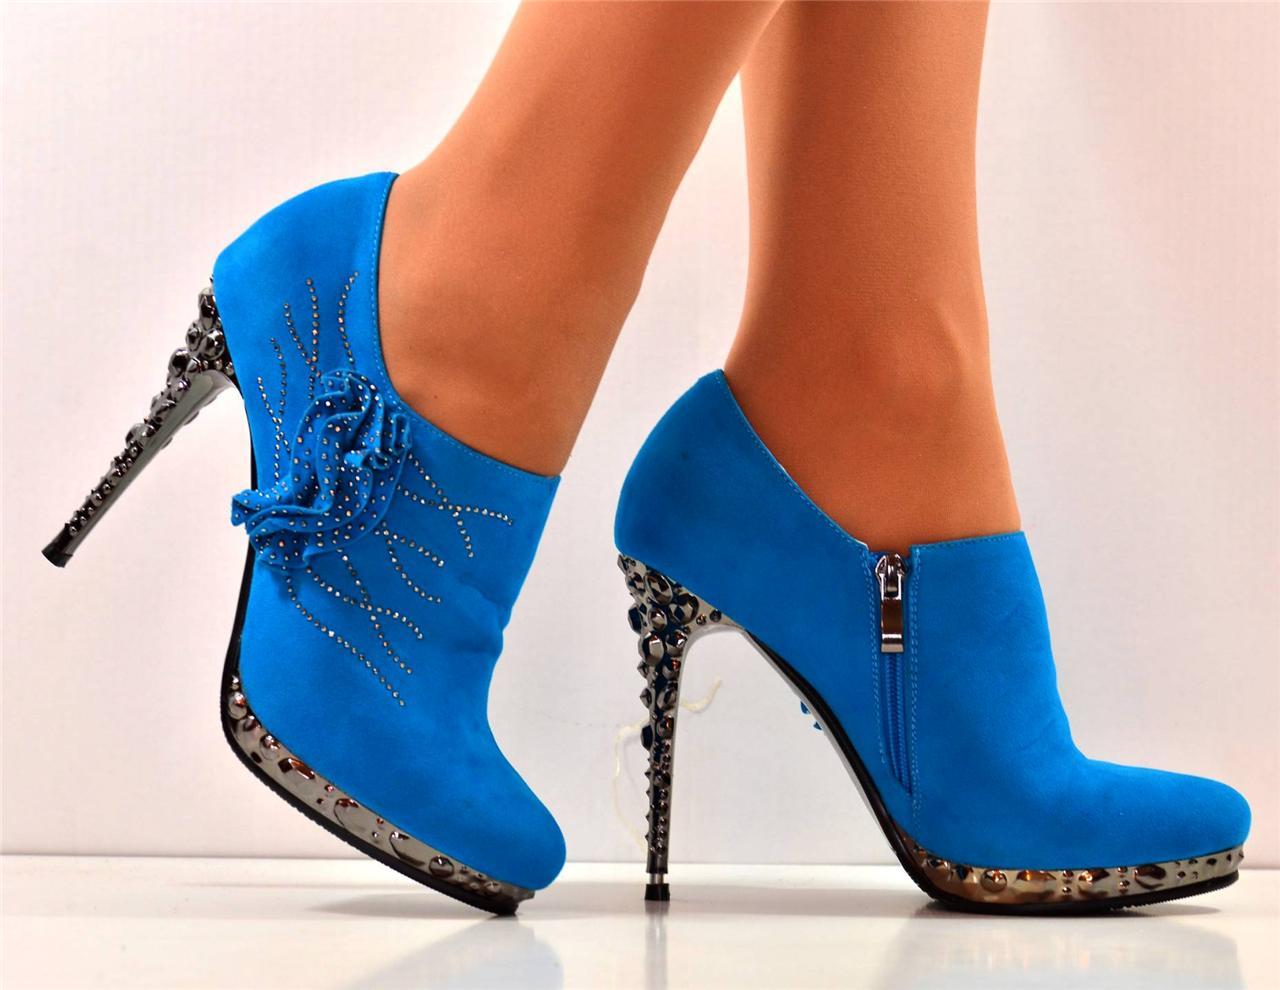 new size 8 turquoise diamante platform high